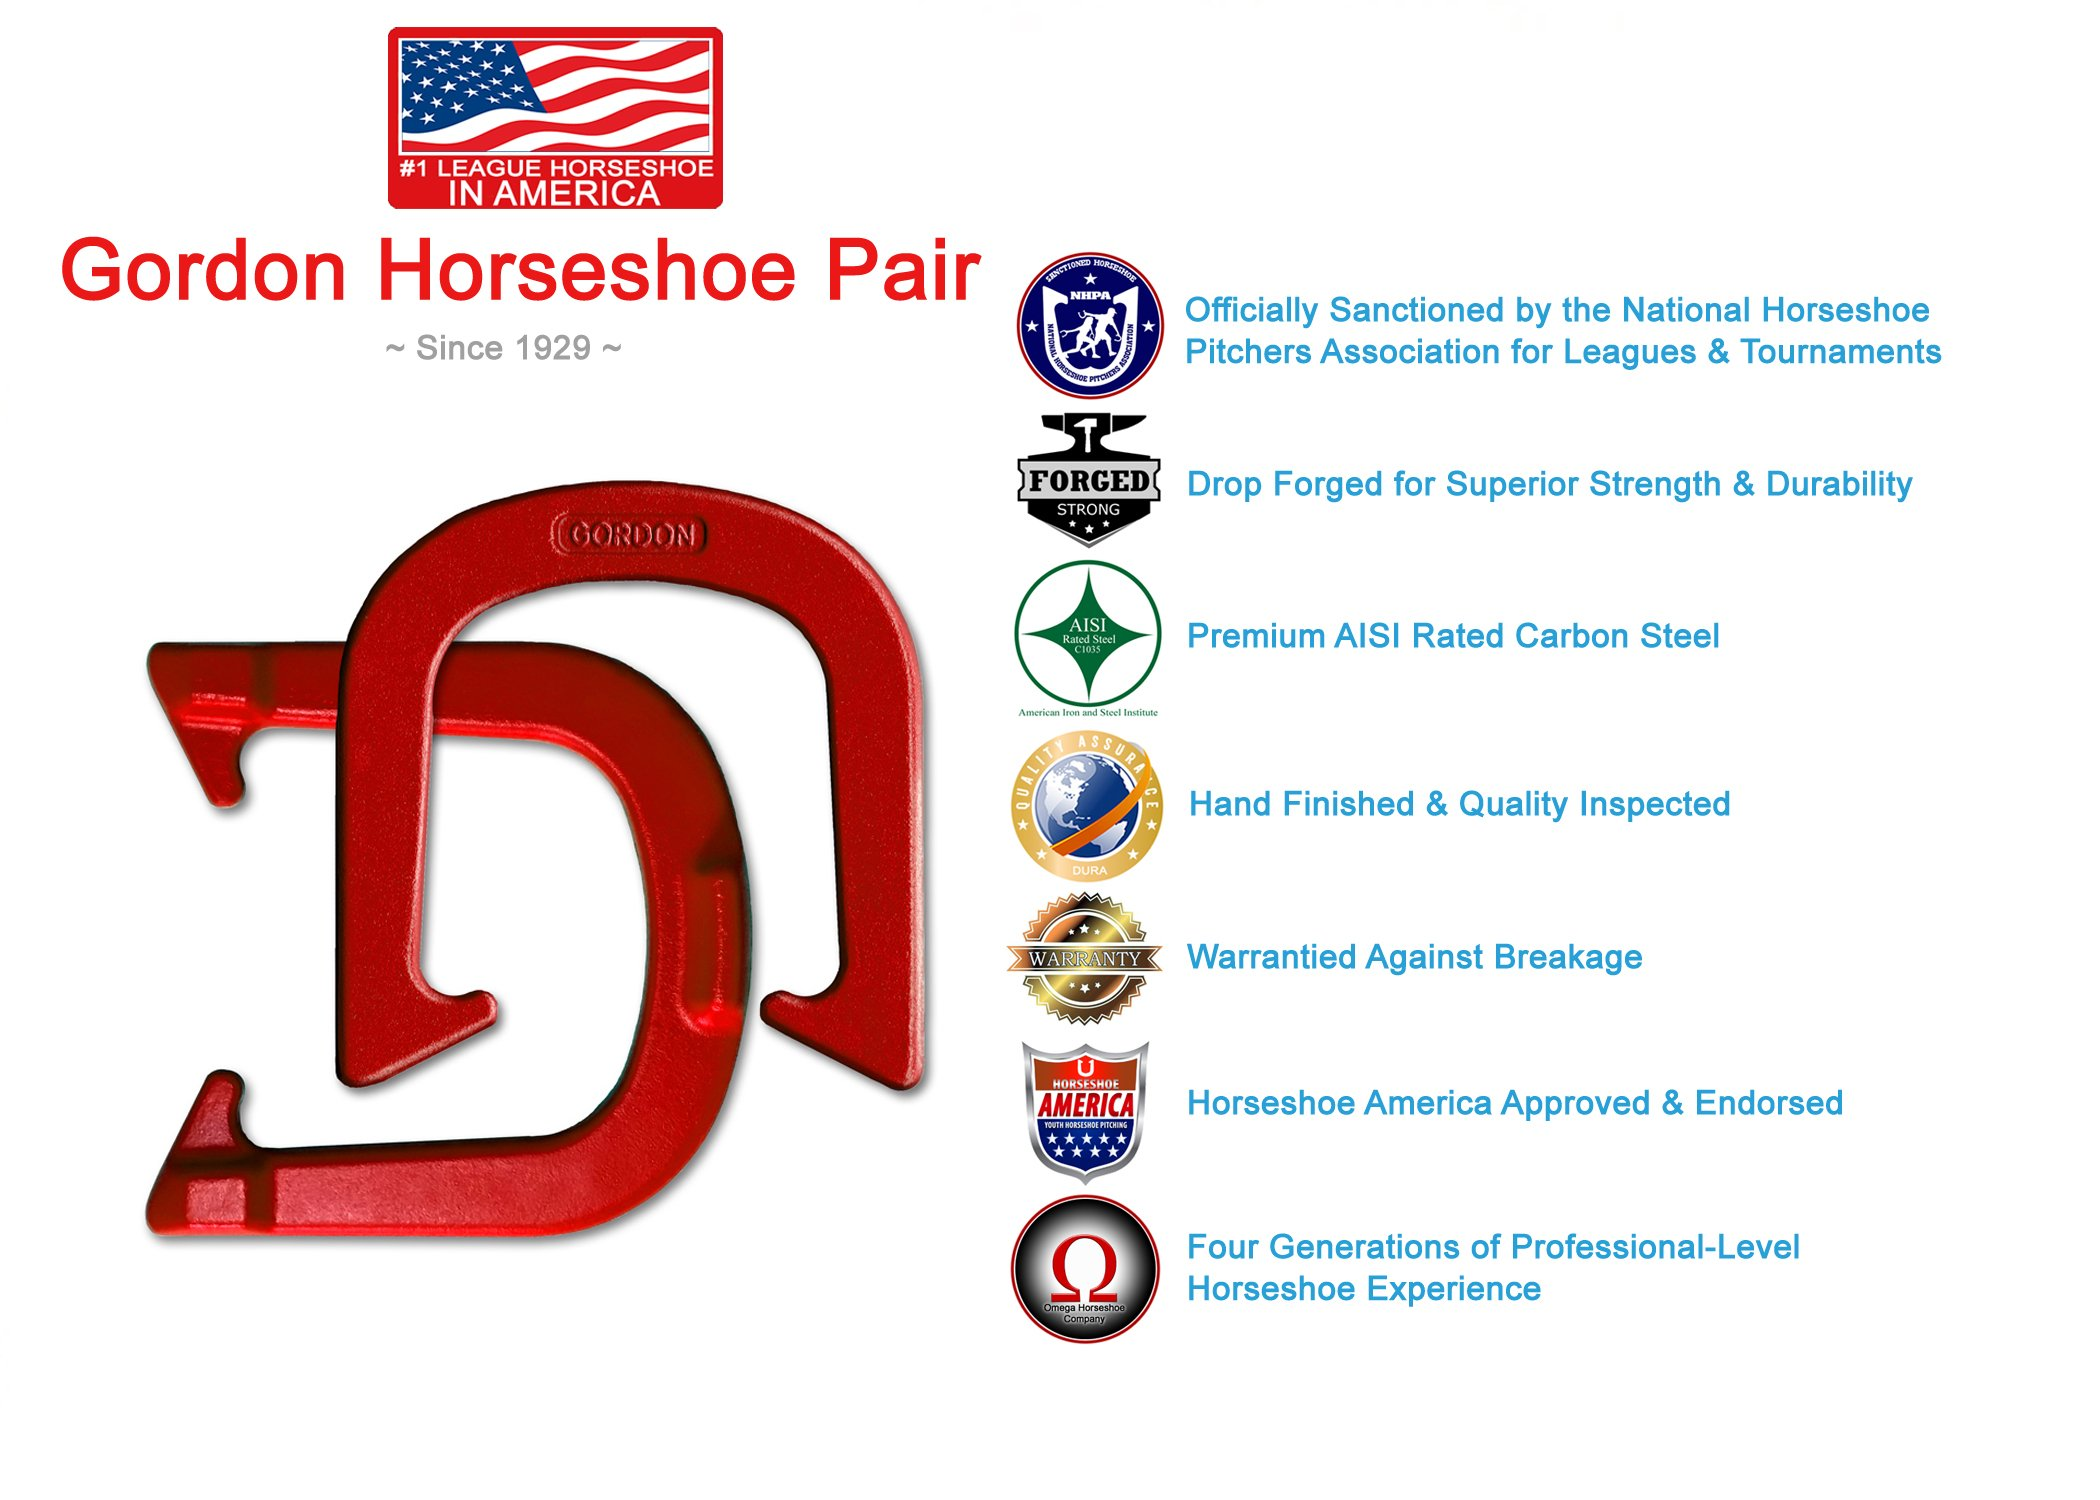 Gordon Professional Pitching Horseshoes - NHPA Sanctioned for Tournament Play - Drop Forged Construction - One Pair (2 Shoes) - Red Finish - Medium Weight by Gordon Horseshoes